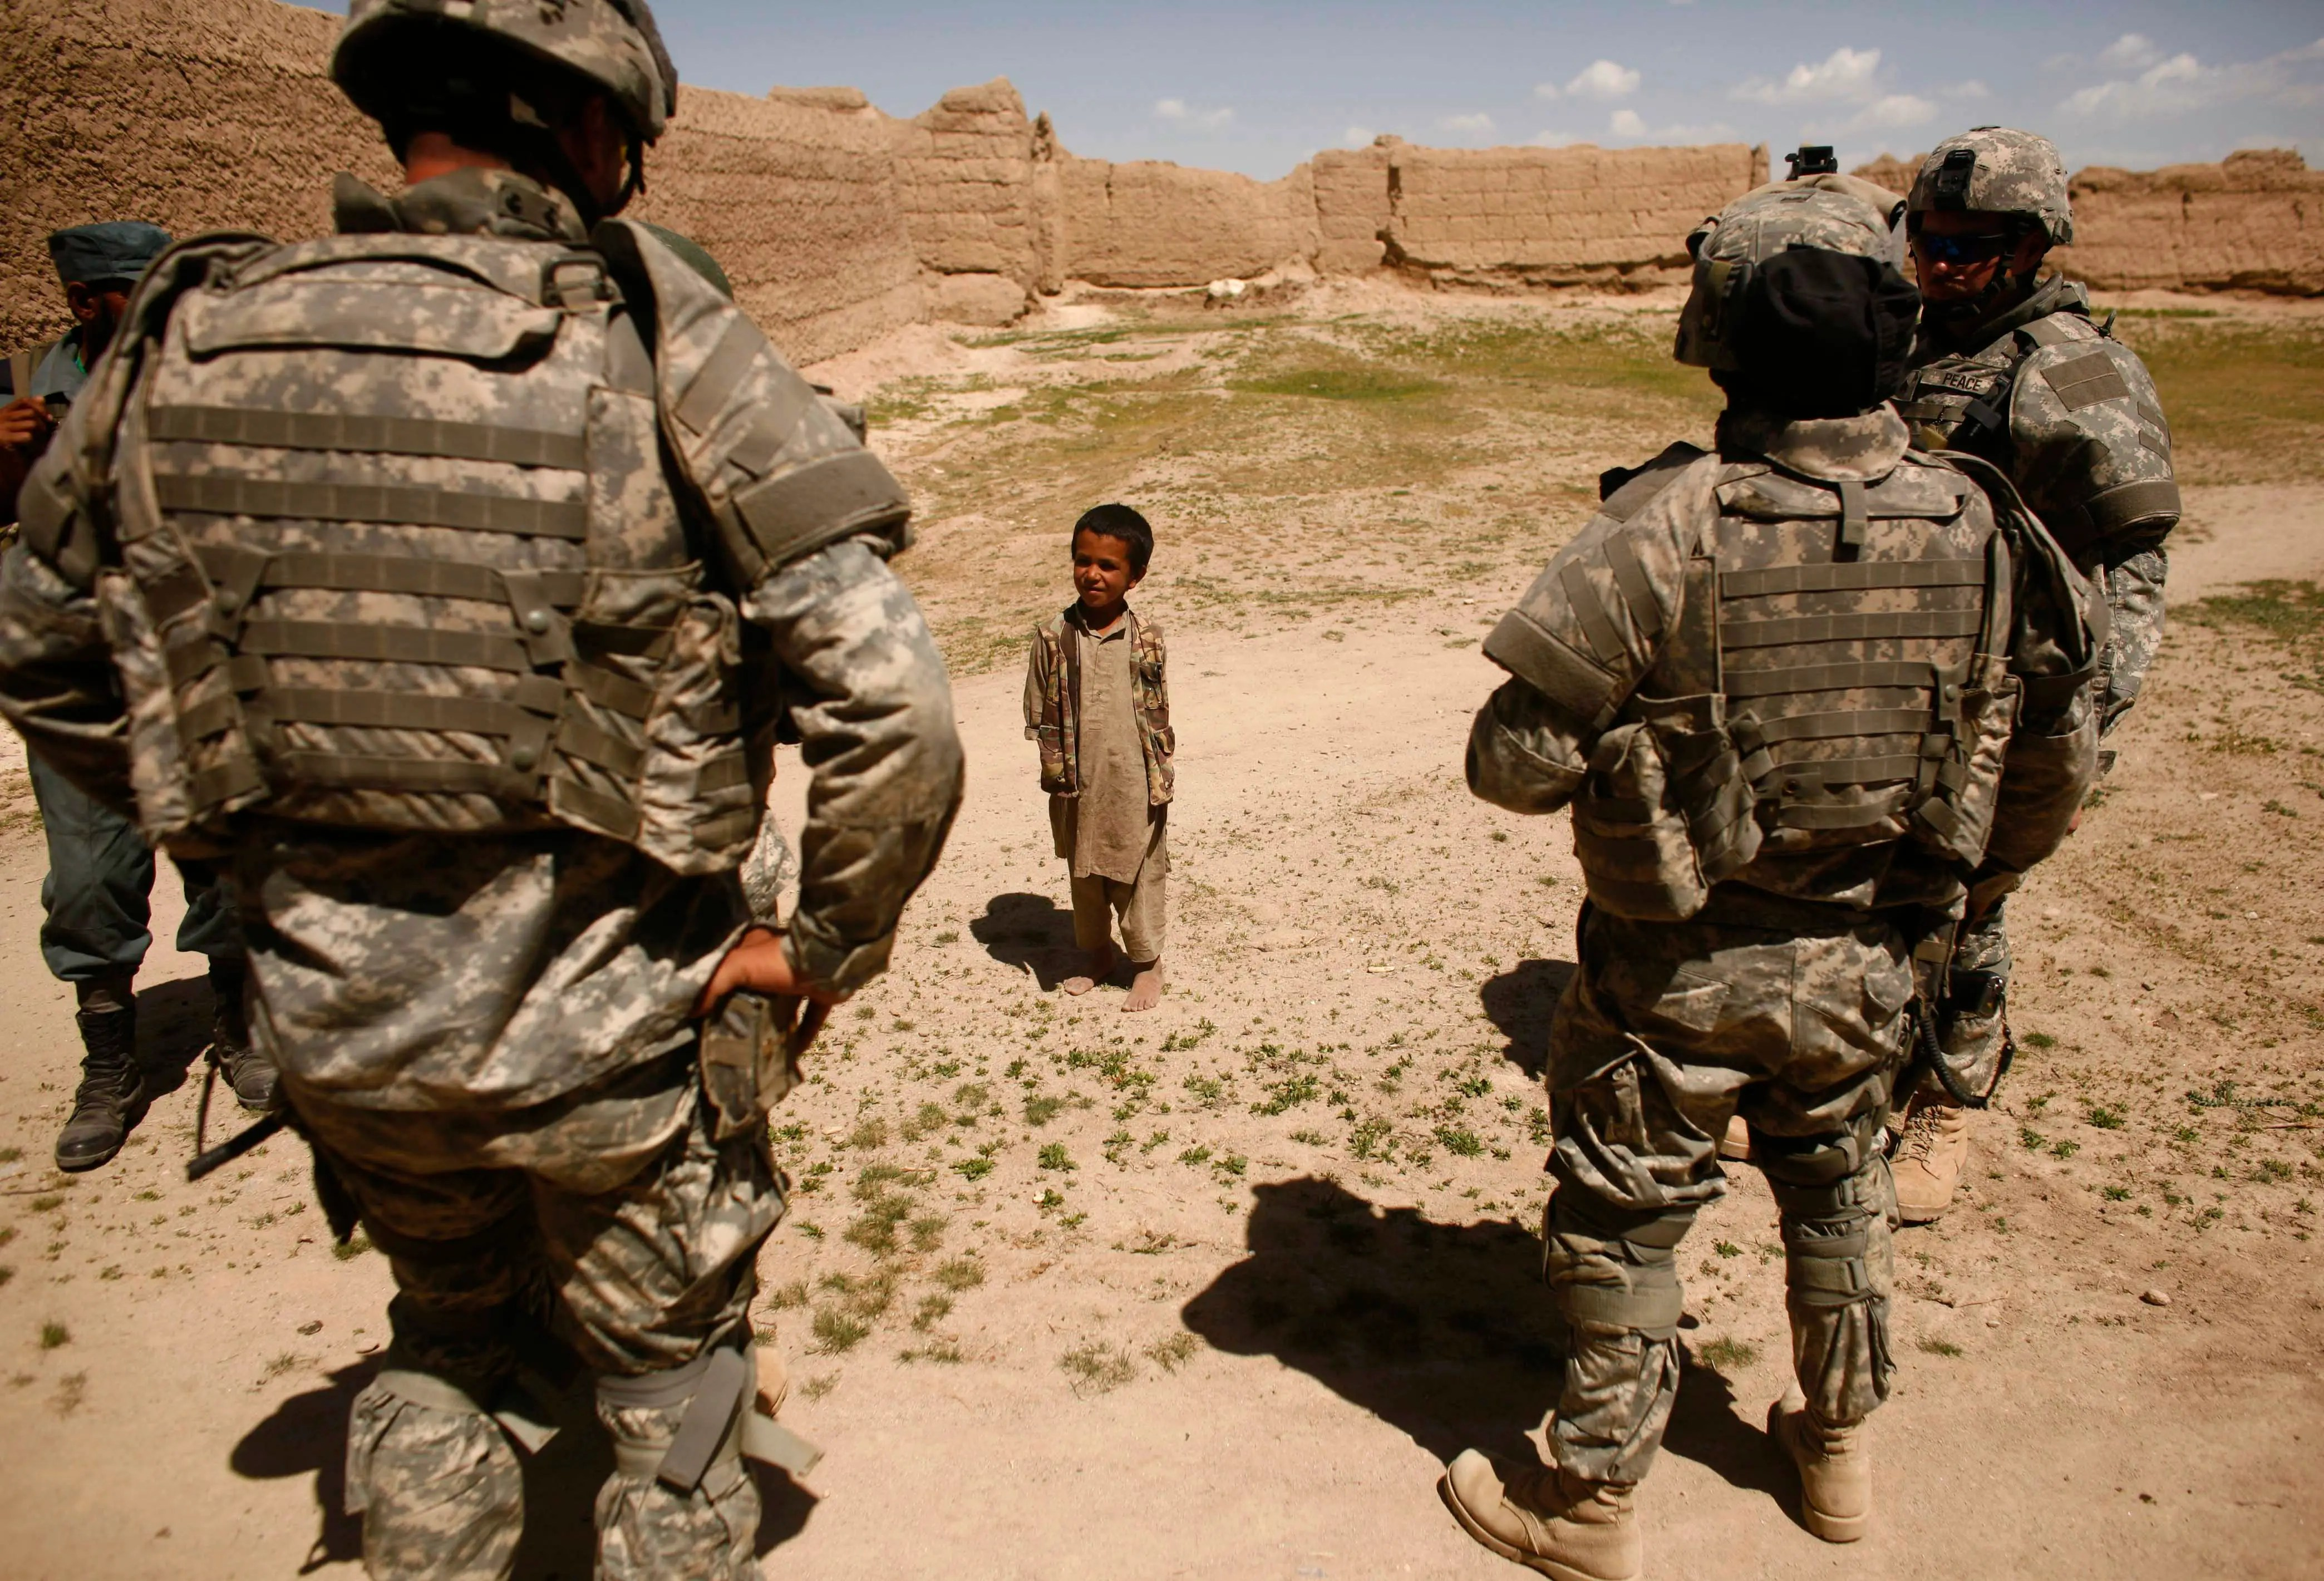 An Afghan boy looks at US soldiers as they patrol a village near the town of Makkor, southwest of Kabul, April 20, 2007.